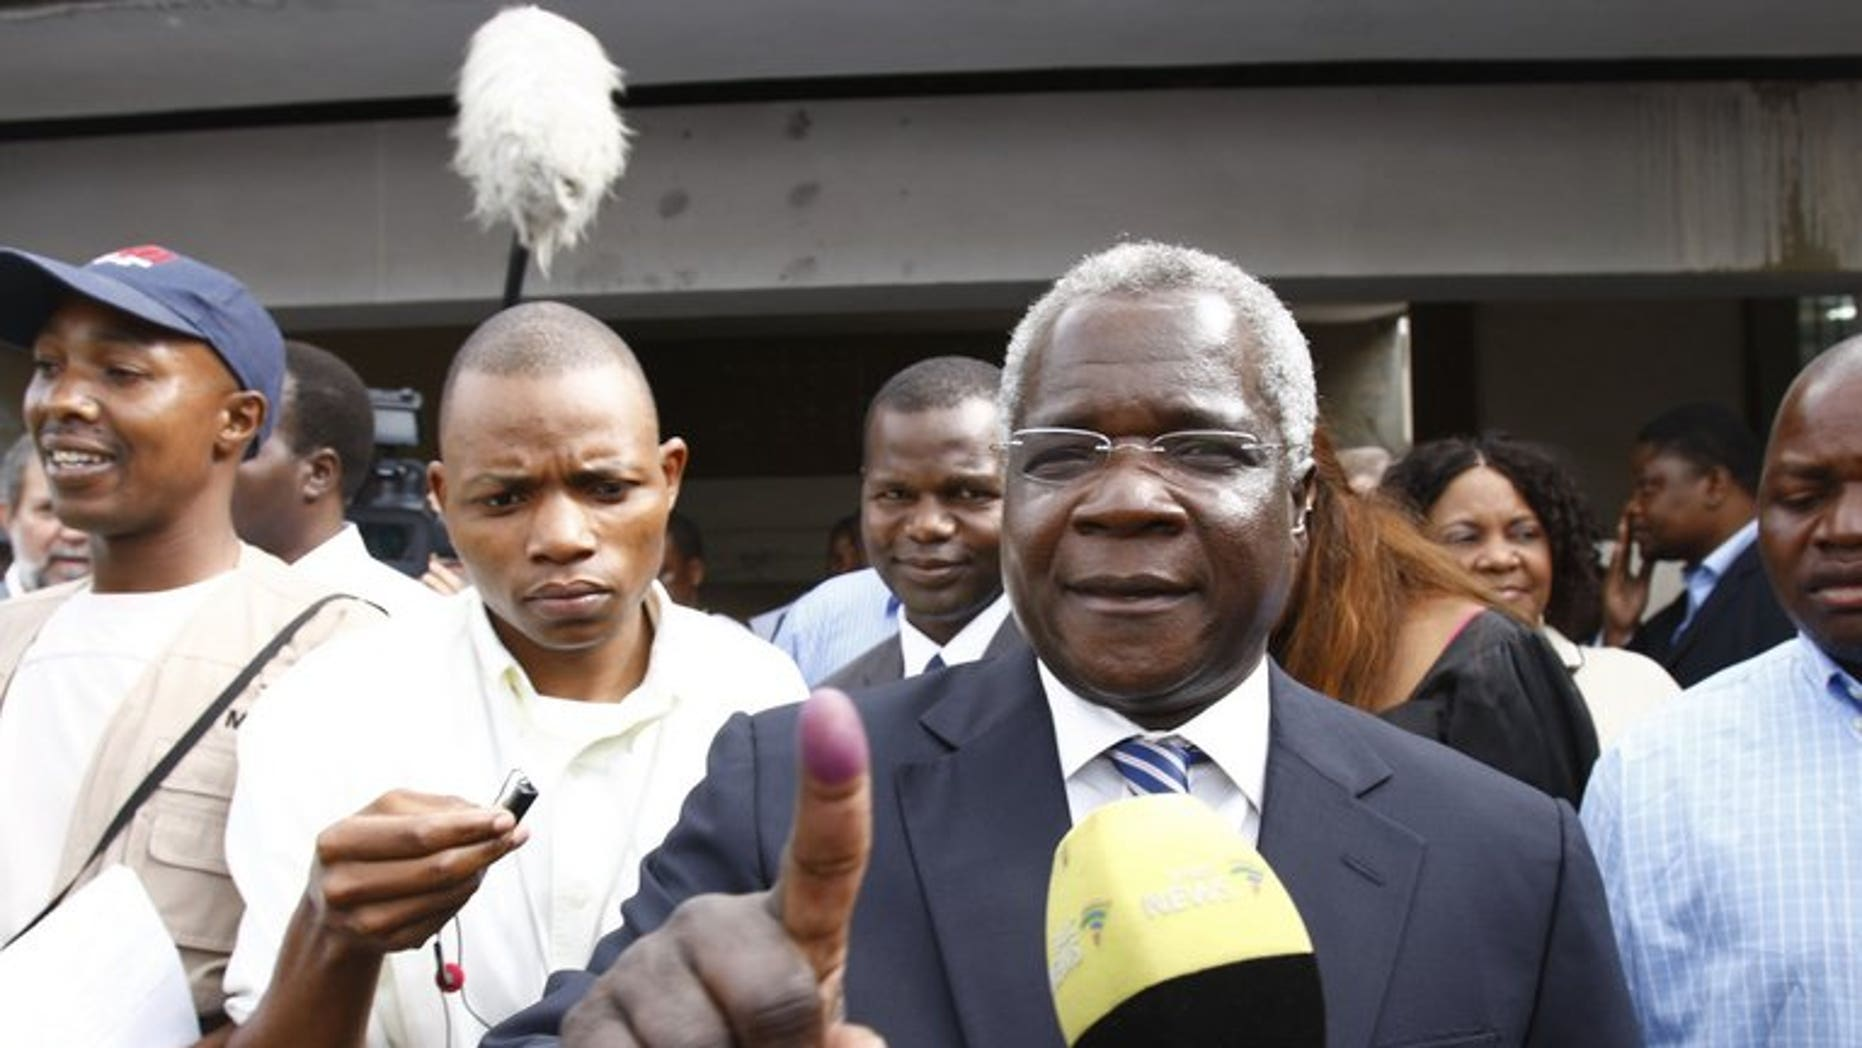 Mozambique's long-time opposition leader, Afonso Dhlakama (centre) speaks to journalists in Maputo on October 28, 2009. Mozambique's bid to end a conflict with former rebels that has unnerved investors hit an impasse after Dhlakama refused to leave his bush camp for talks.